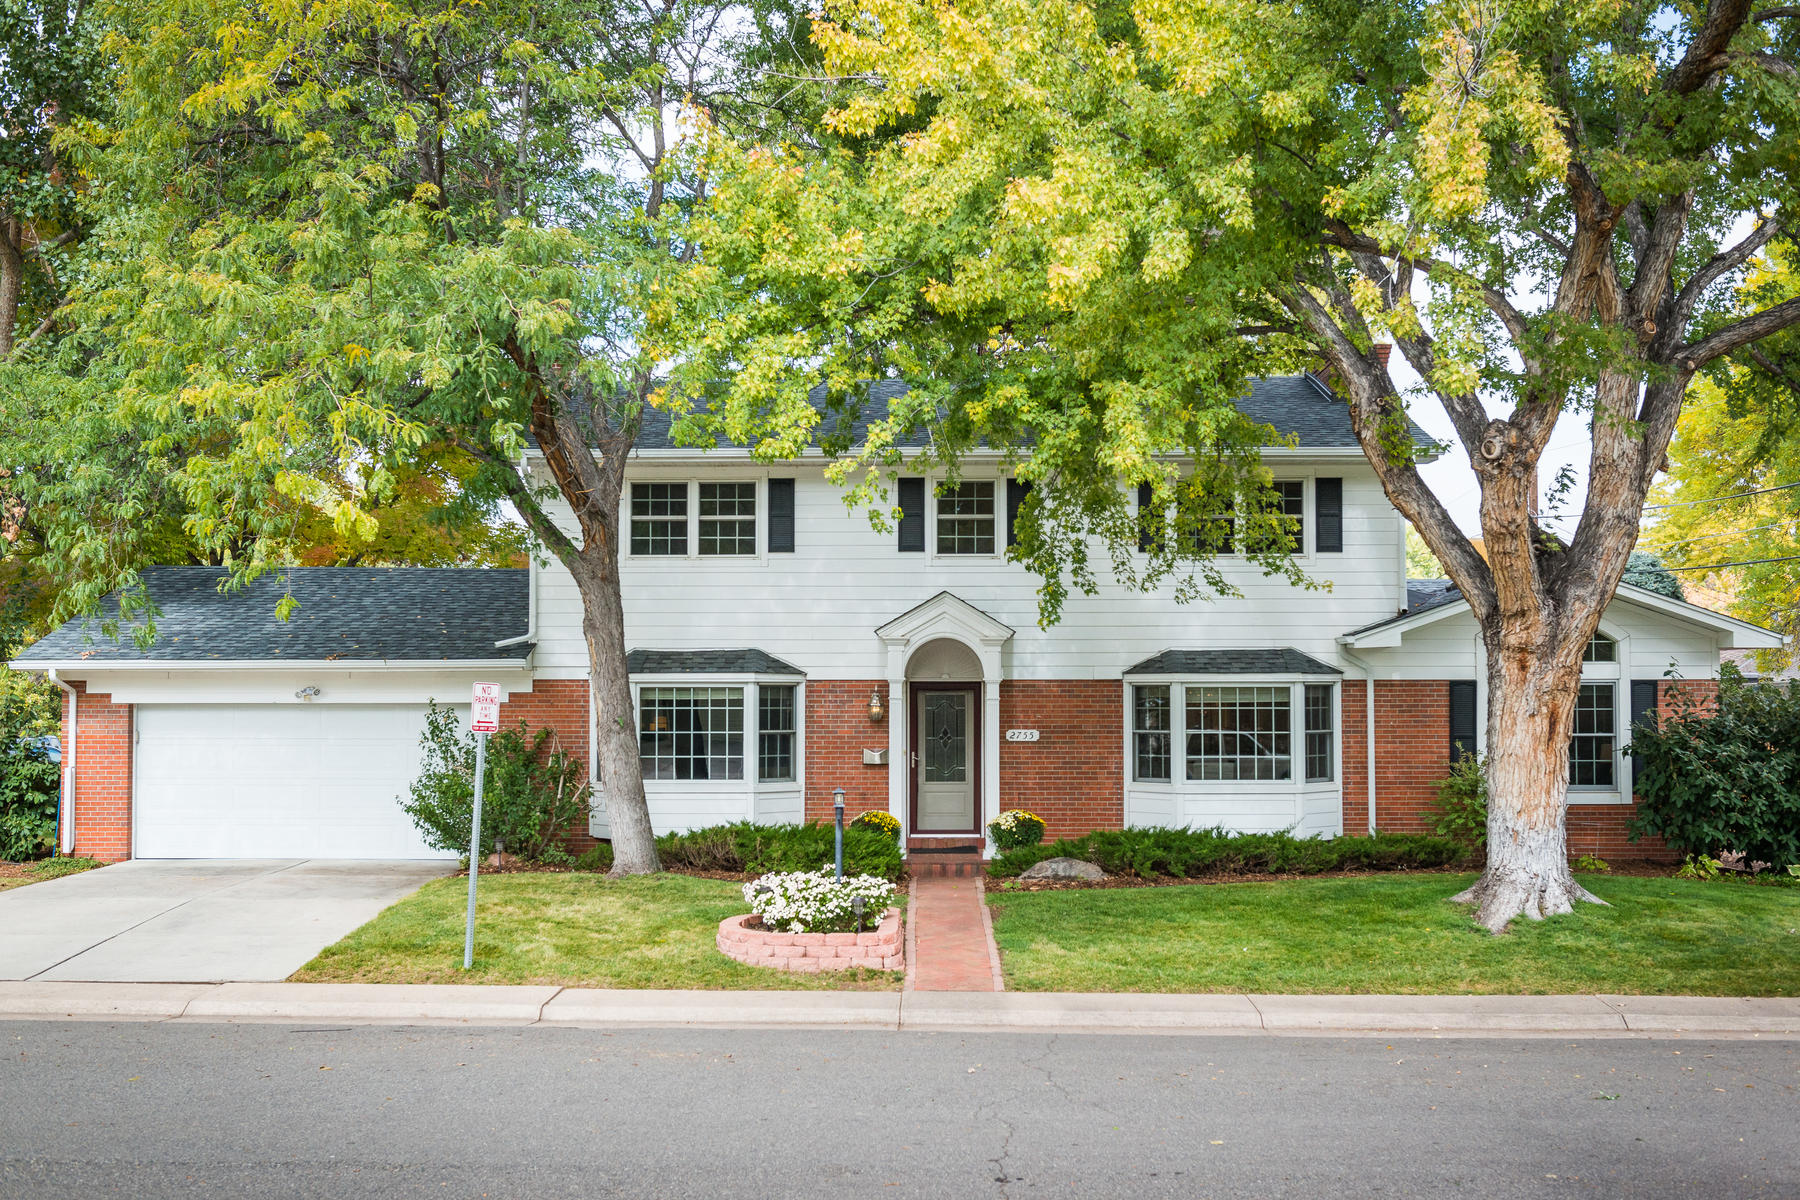 Single Family Home for Active at Exquisitely Renovated Two-Story Traditional Colonial On Large Corner Lot 2755 E Cornell Ave Denver, Colorado 80210 United States